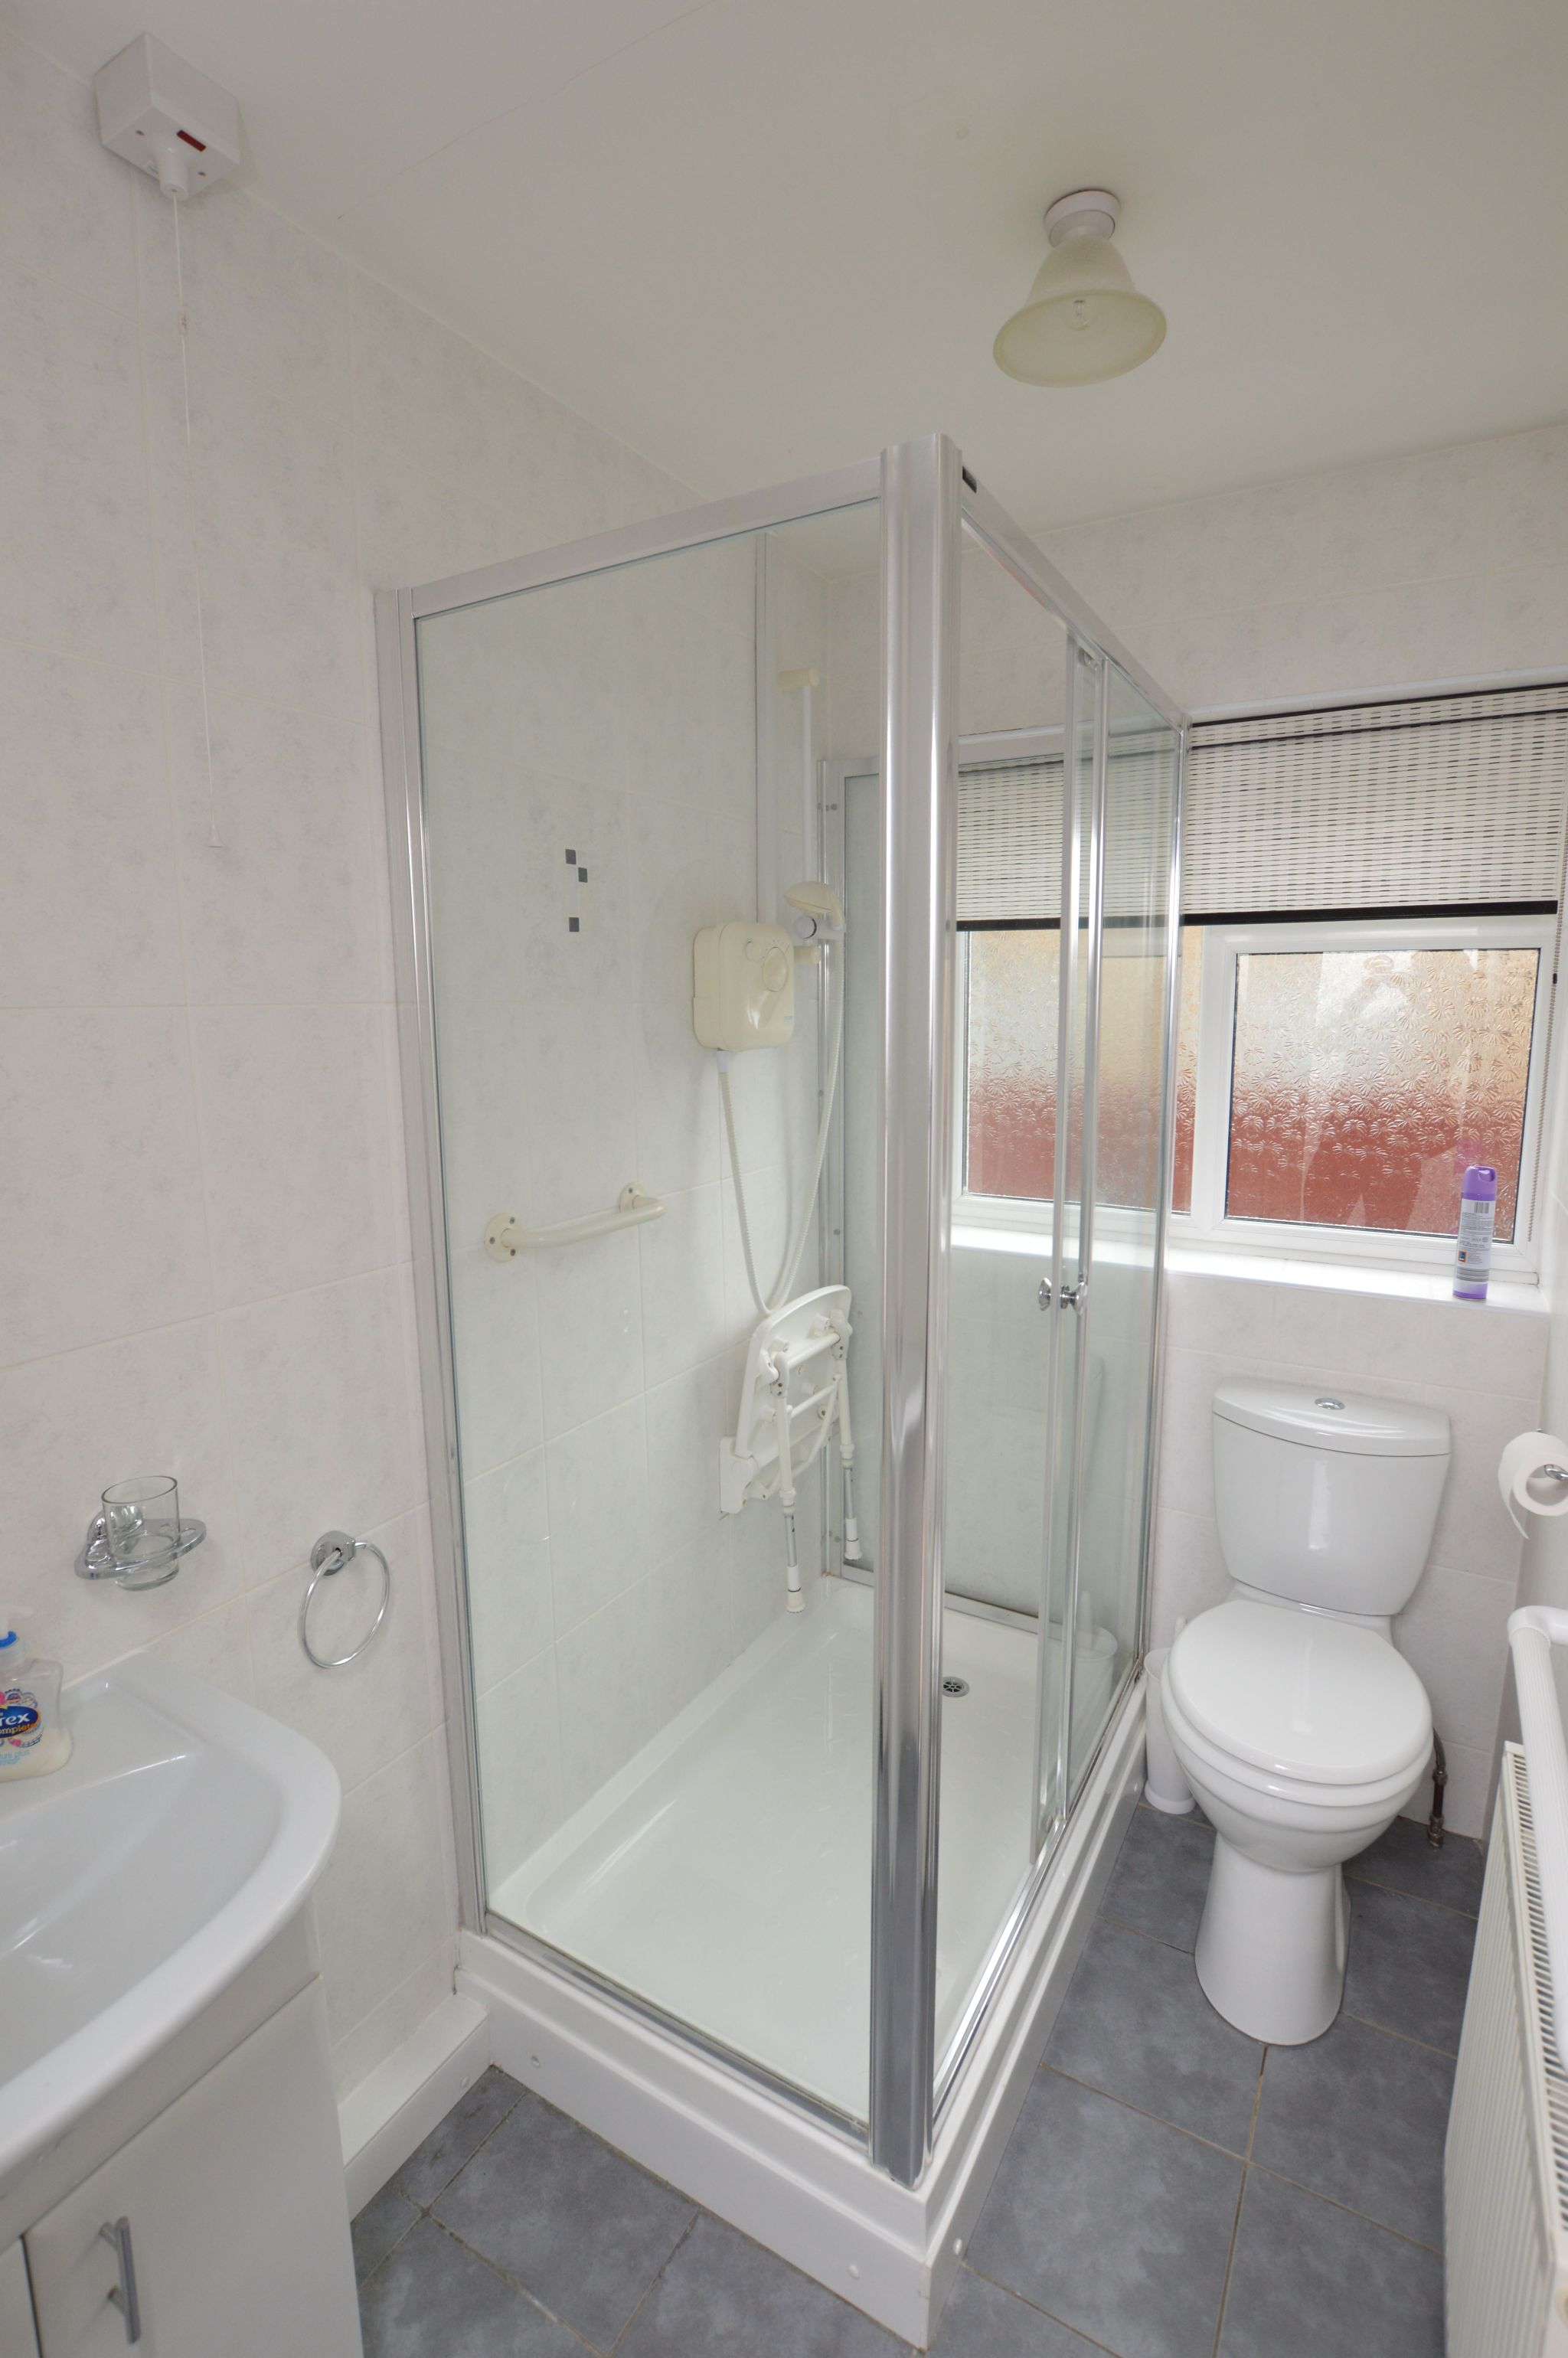 2 bedroom semi-detached bungalow For Sale in Abergele - Bathroom